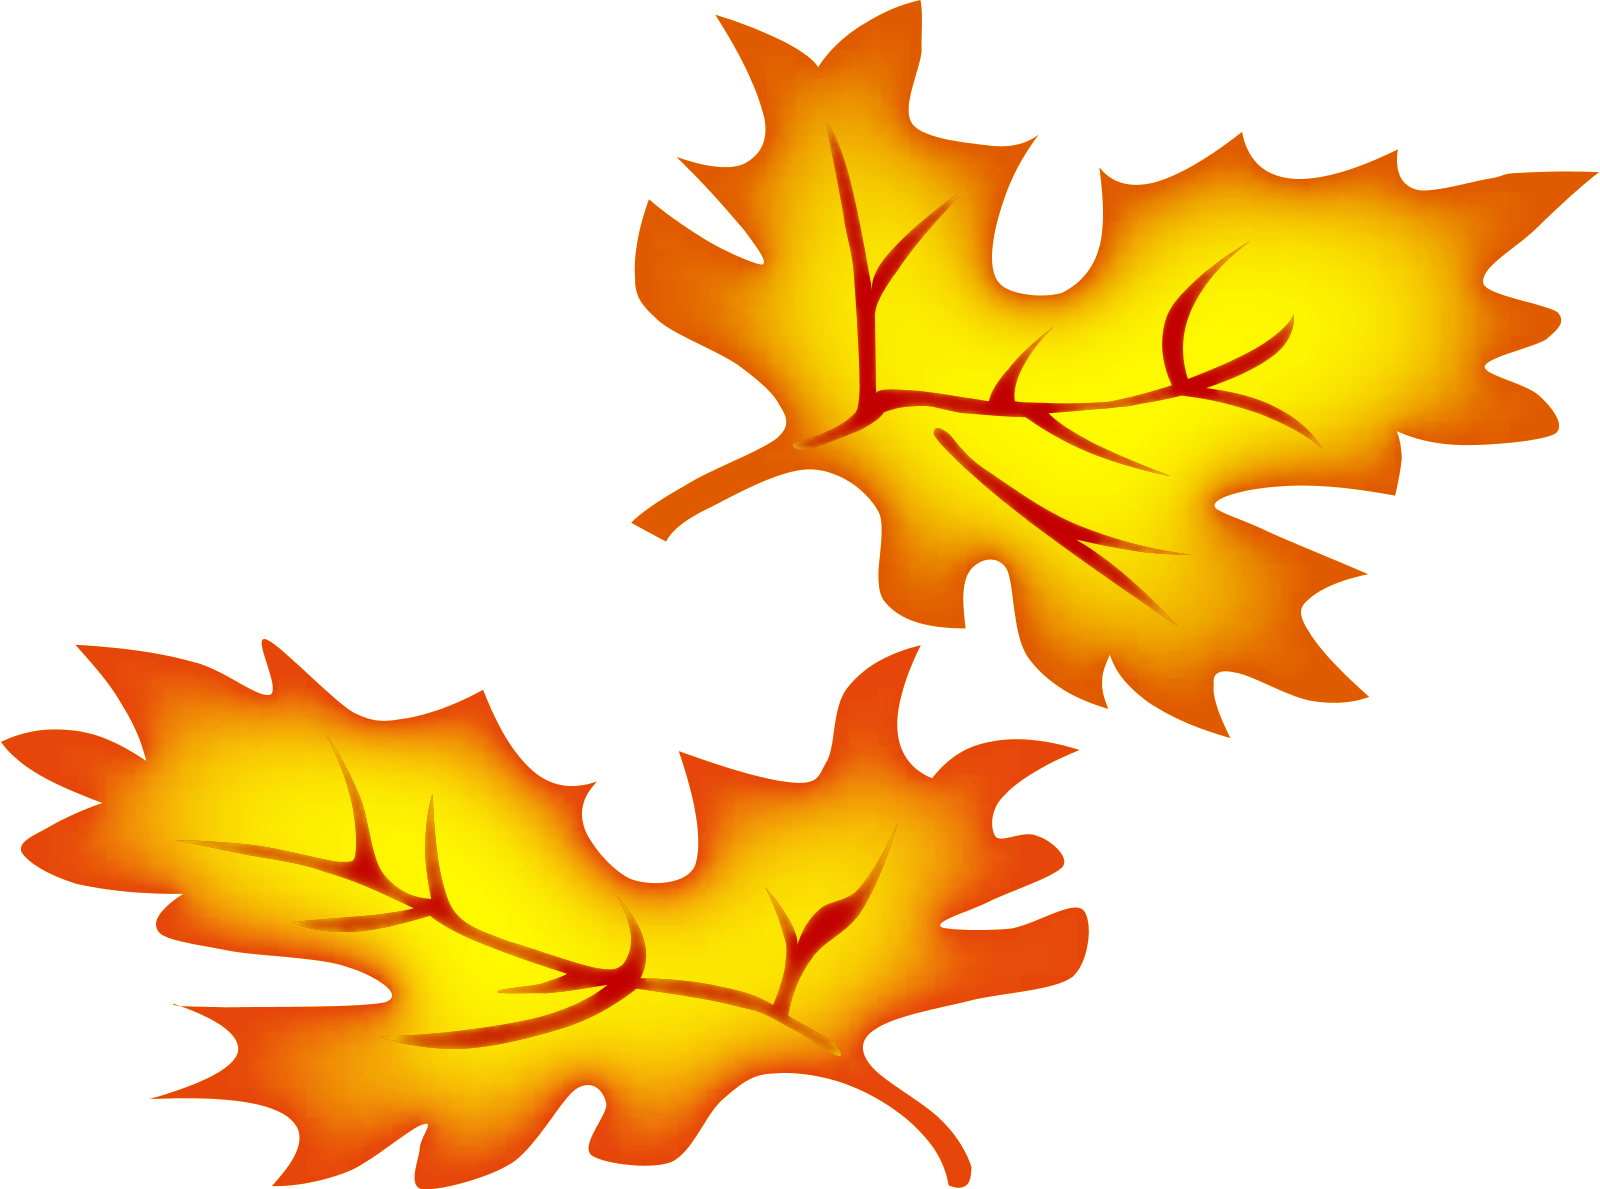 Yellow oak leaf clipart picture royalty free library Oak Leaves Clipart | Free download best Oak Leaves Clipart ... picture royalty free library